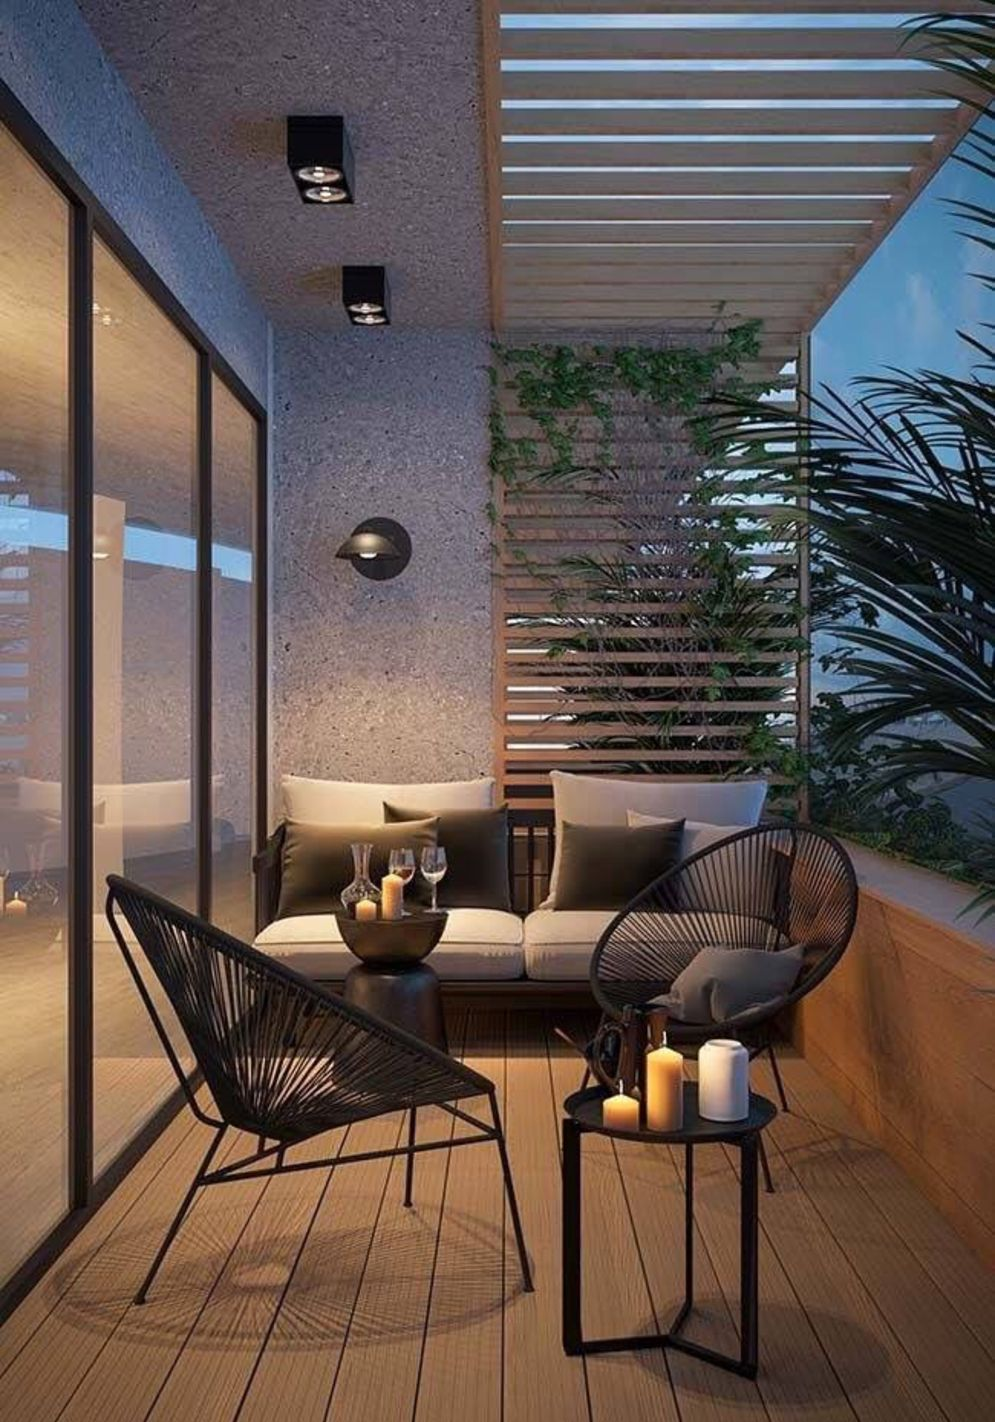 Brilliant apartment balcony ideas converted into cozy living space Image 2